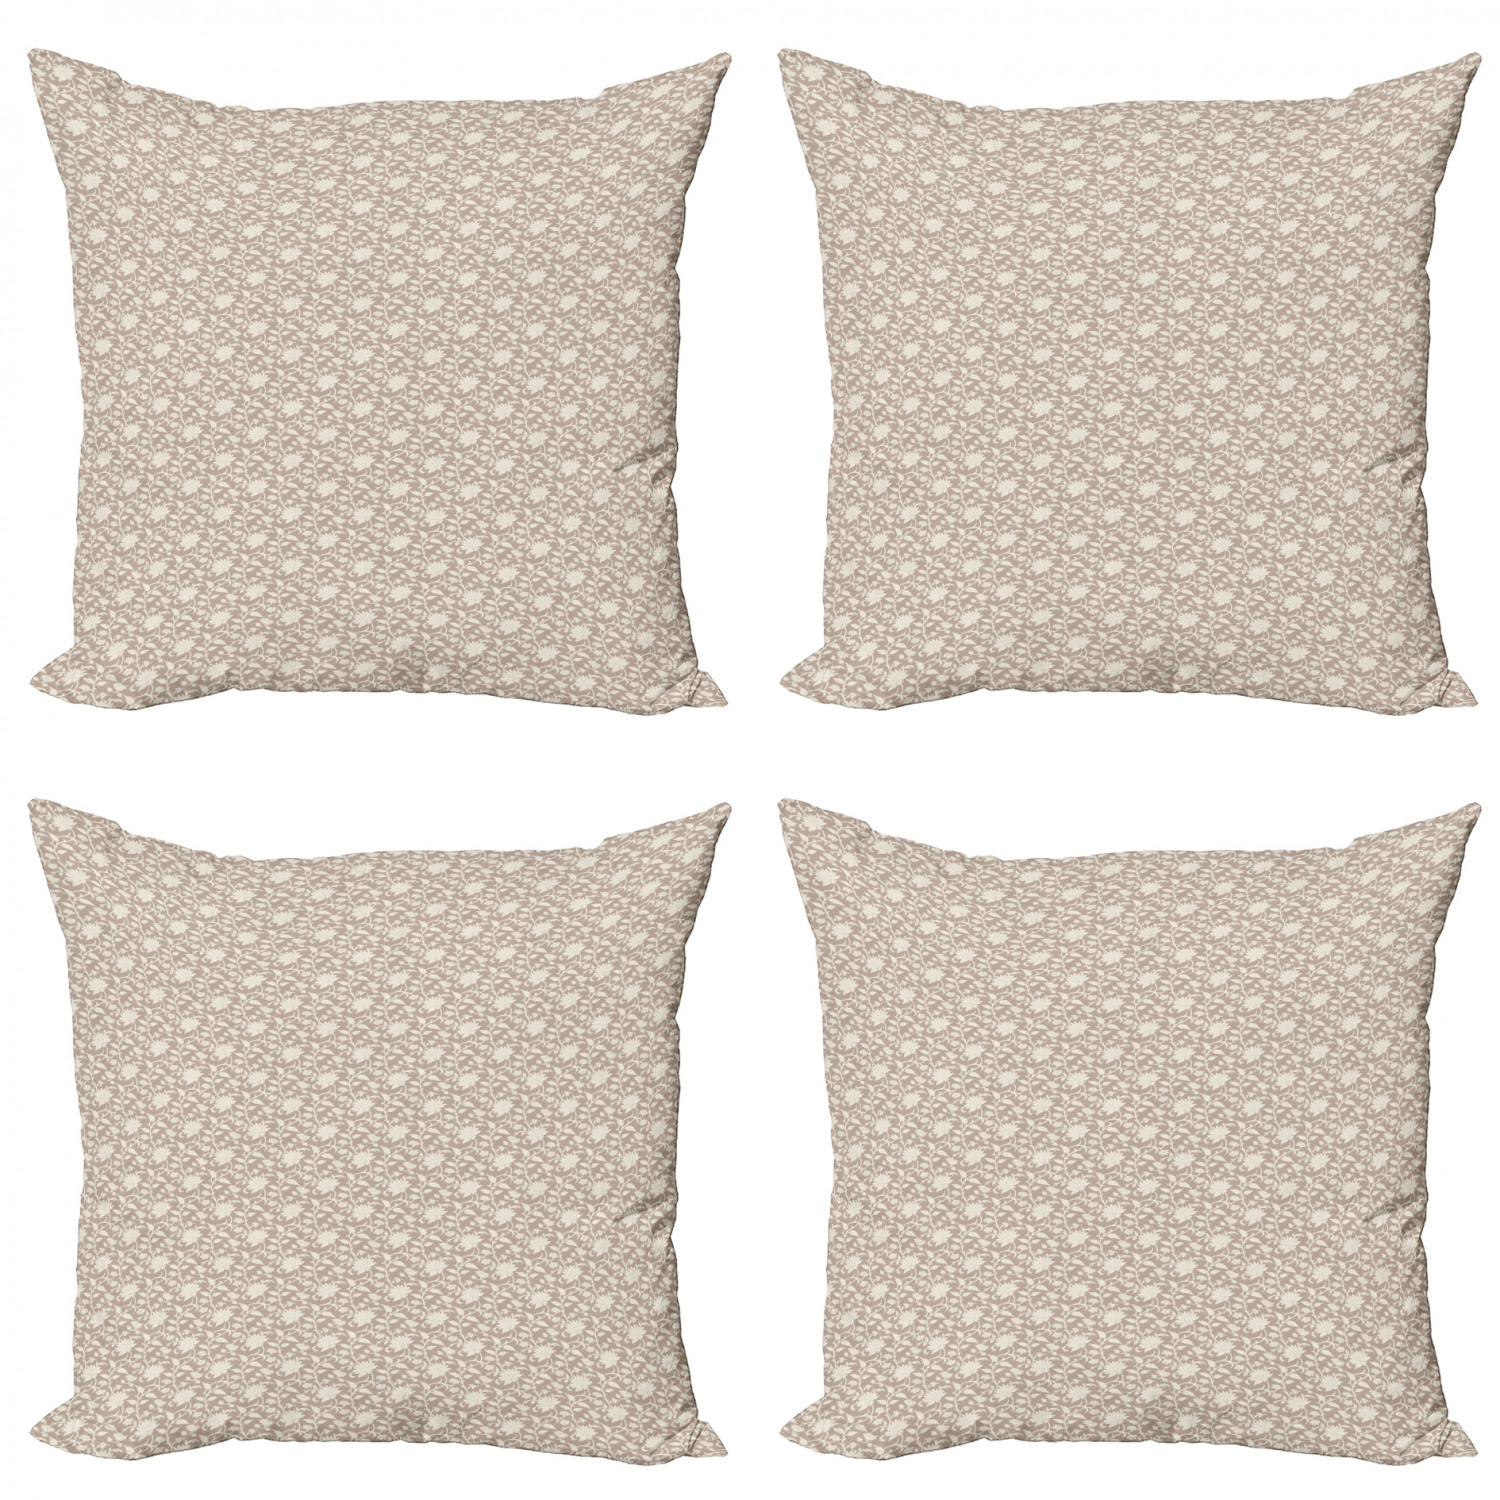 Ambesonne-Floral-Drawings-Cushion-Cover-Set-of-4-for-Couch-and-Bed-in-4-Sizes thumbnail 13